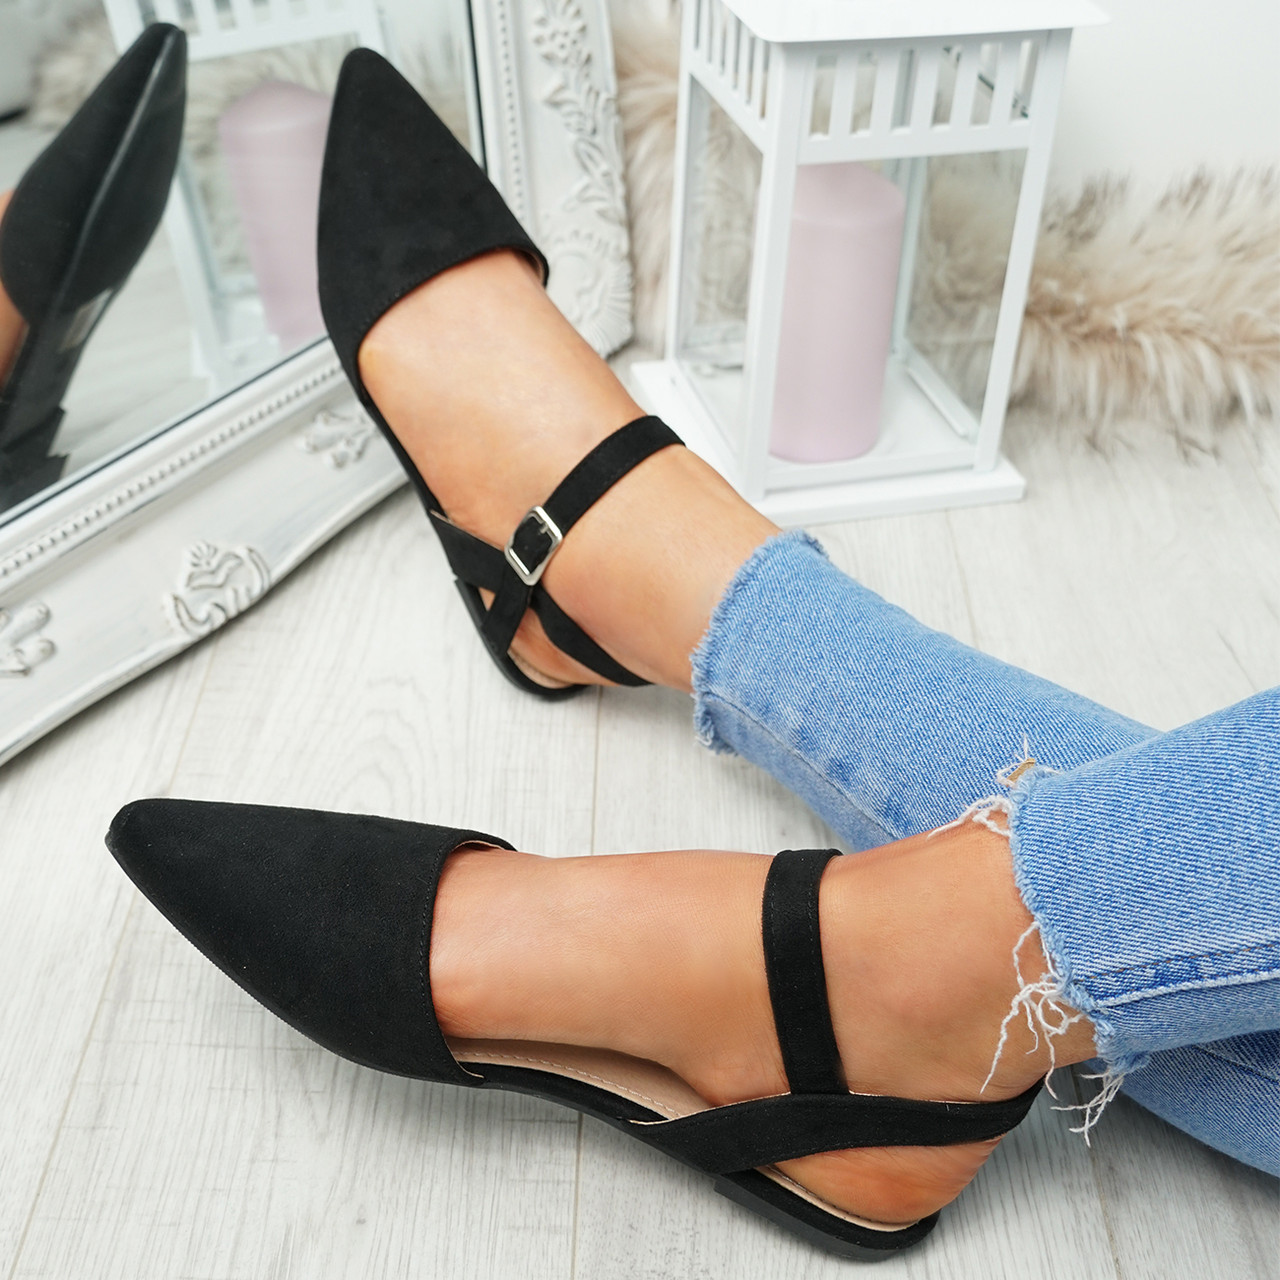 NEW WOMENS LADIES  FLAT BUCKLE STRAP OFFICE WORK CASUAL PUMPS SHOES SIZE 3-8